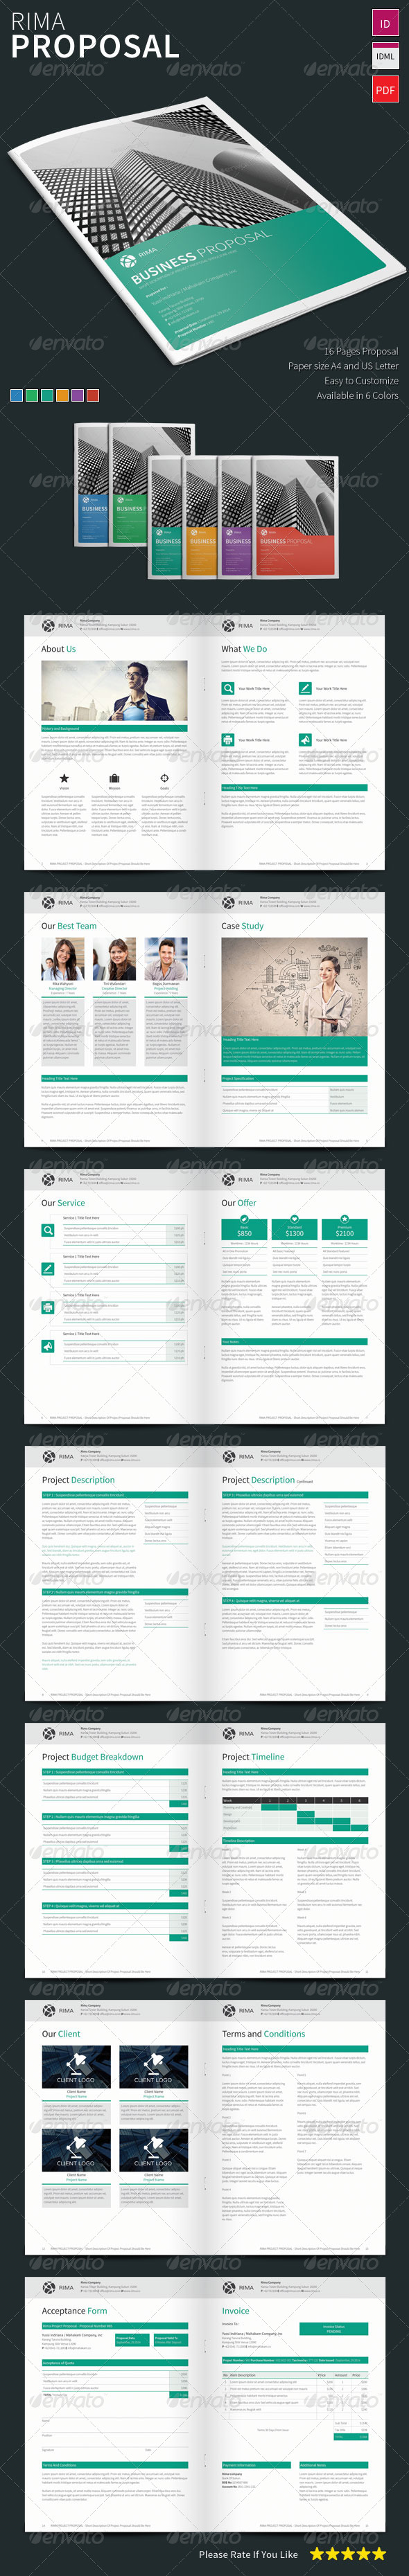 GraphicRiver Rima Proposal Template 8047713